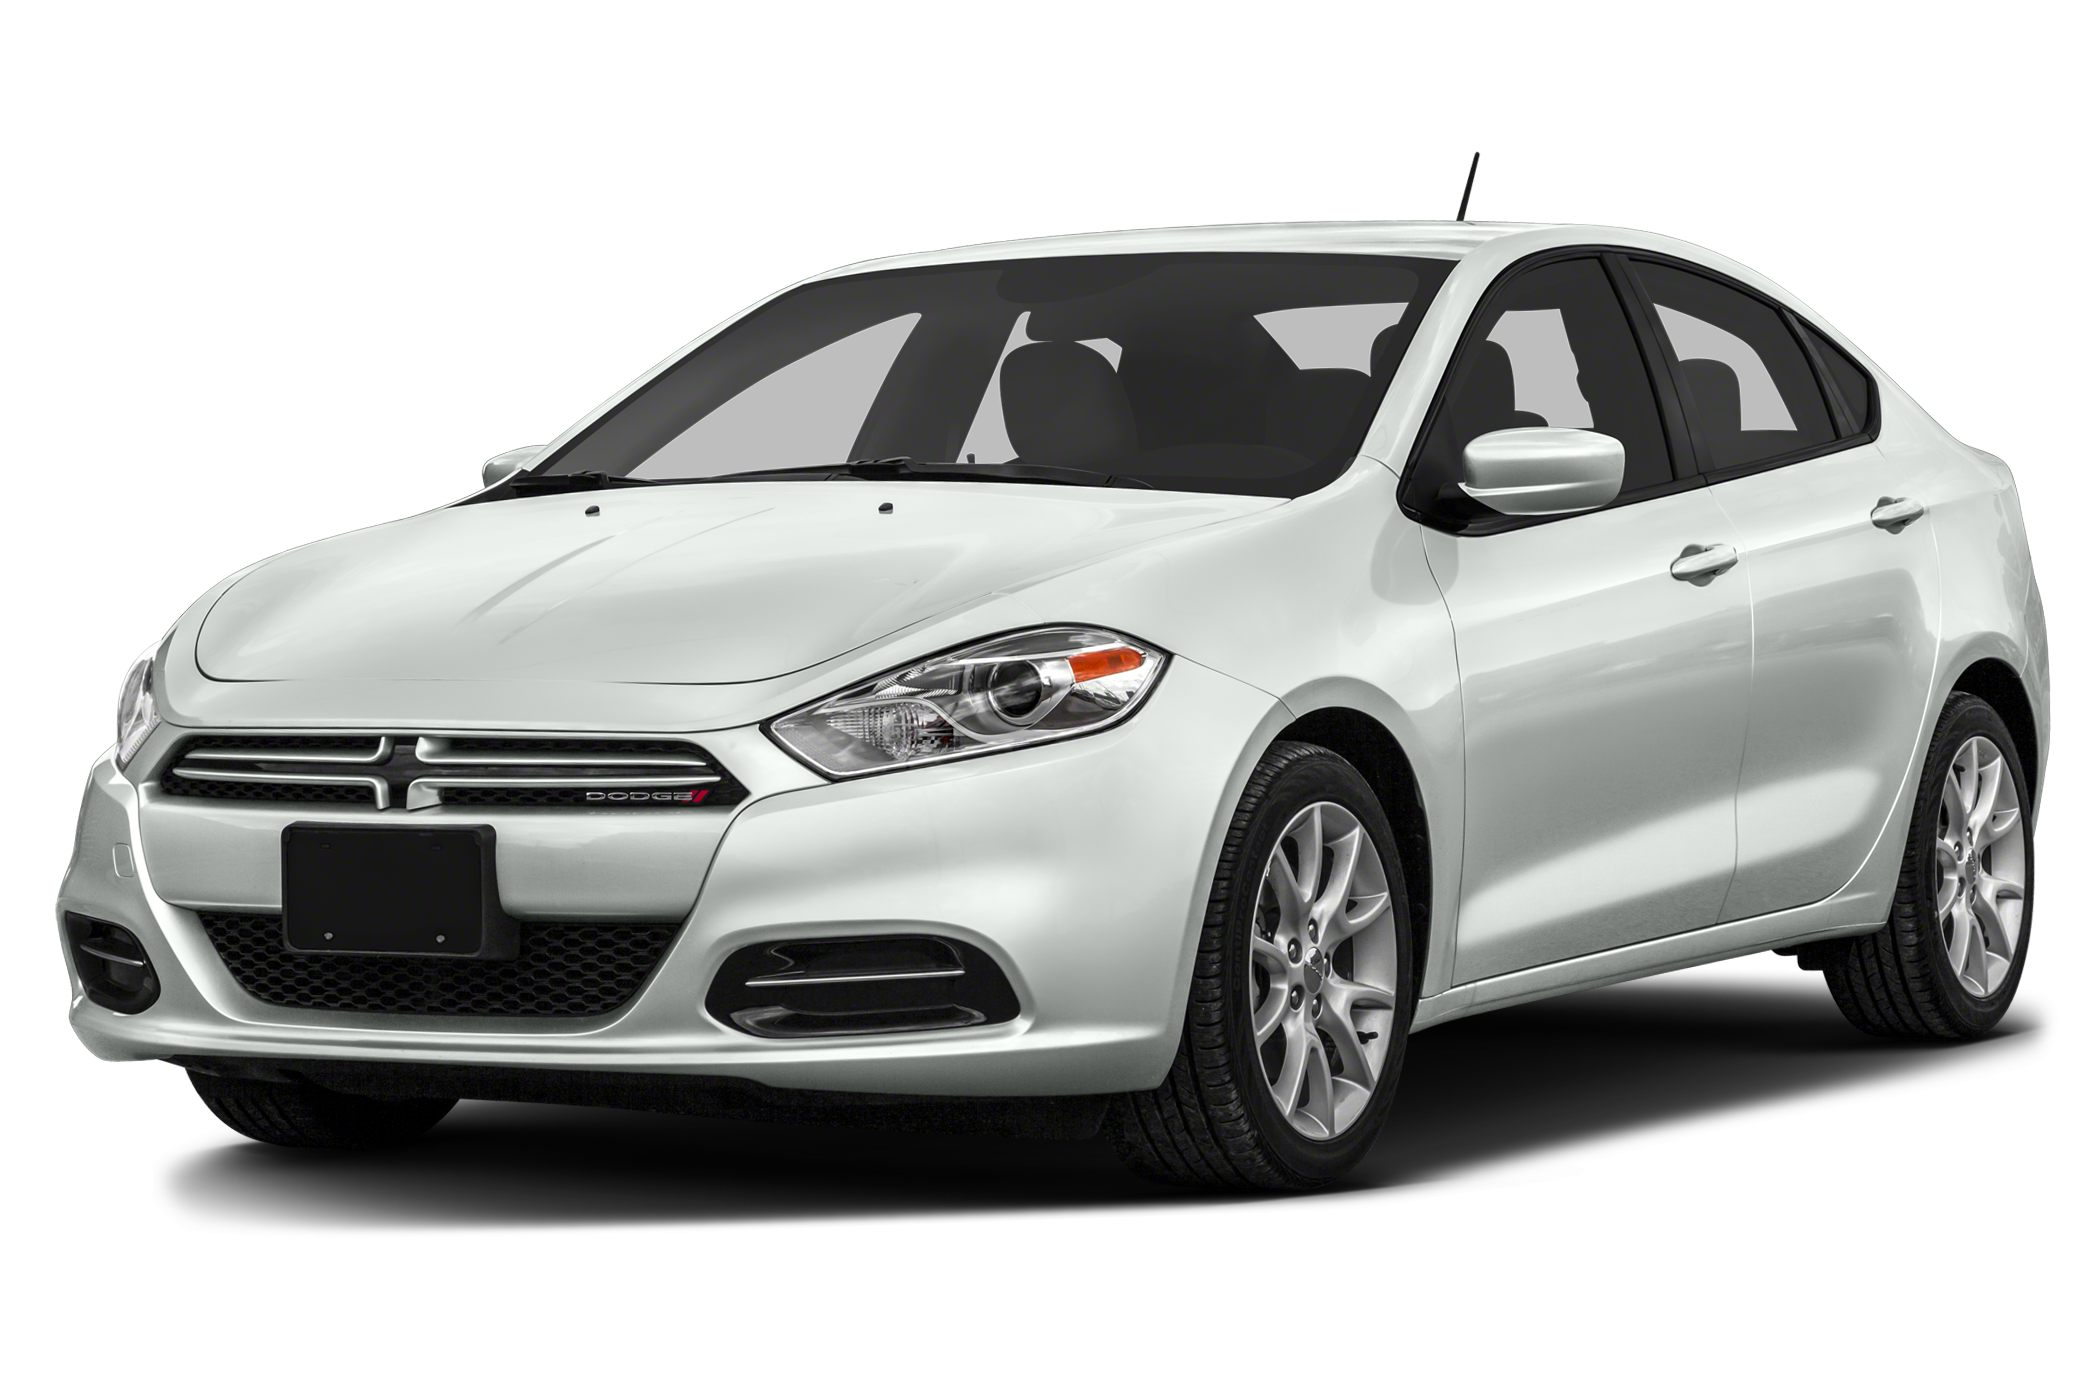 2013 Dodge Dart SXT Sedan for sale in Wabash for $14,894 with 35,282 miles